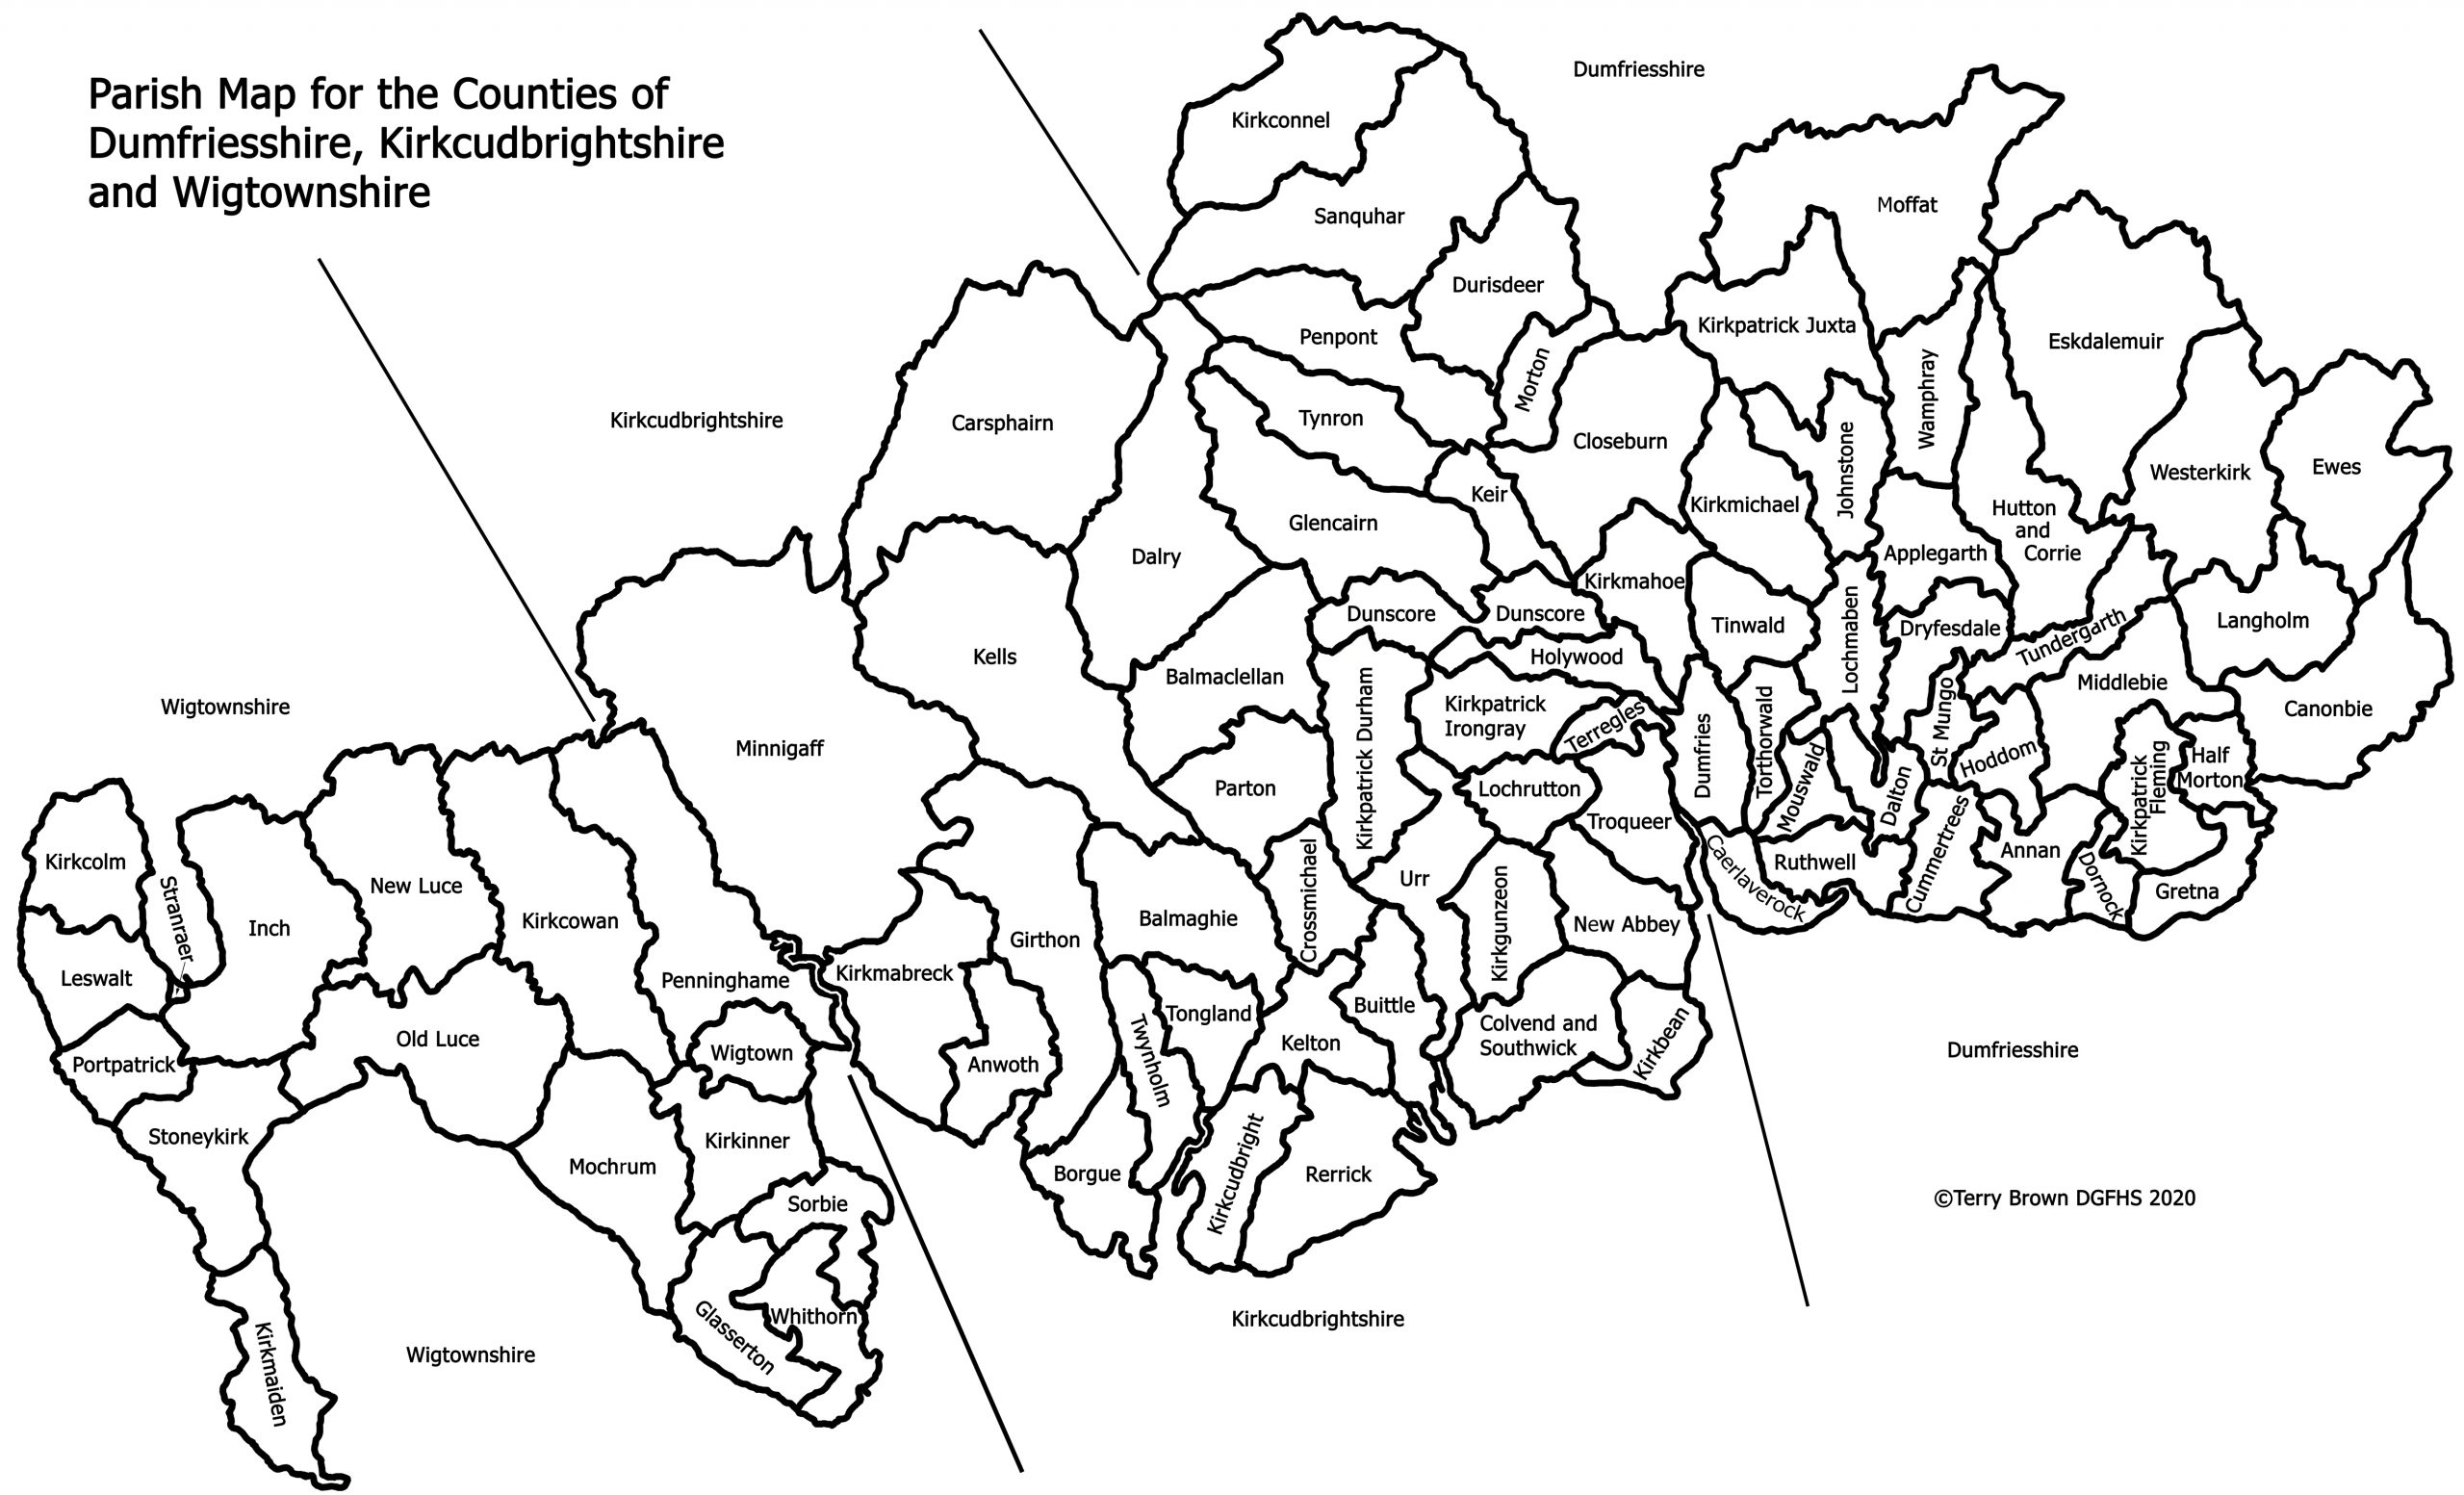 Parish Map of Dumfries and Galloway